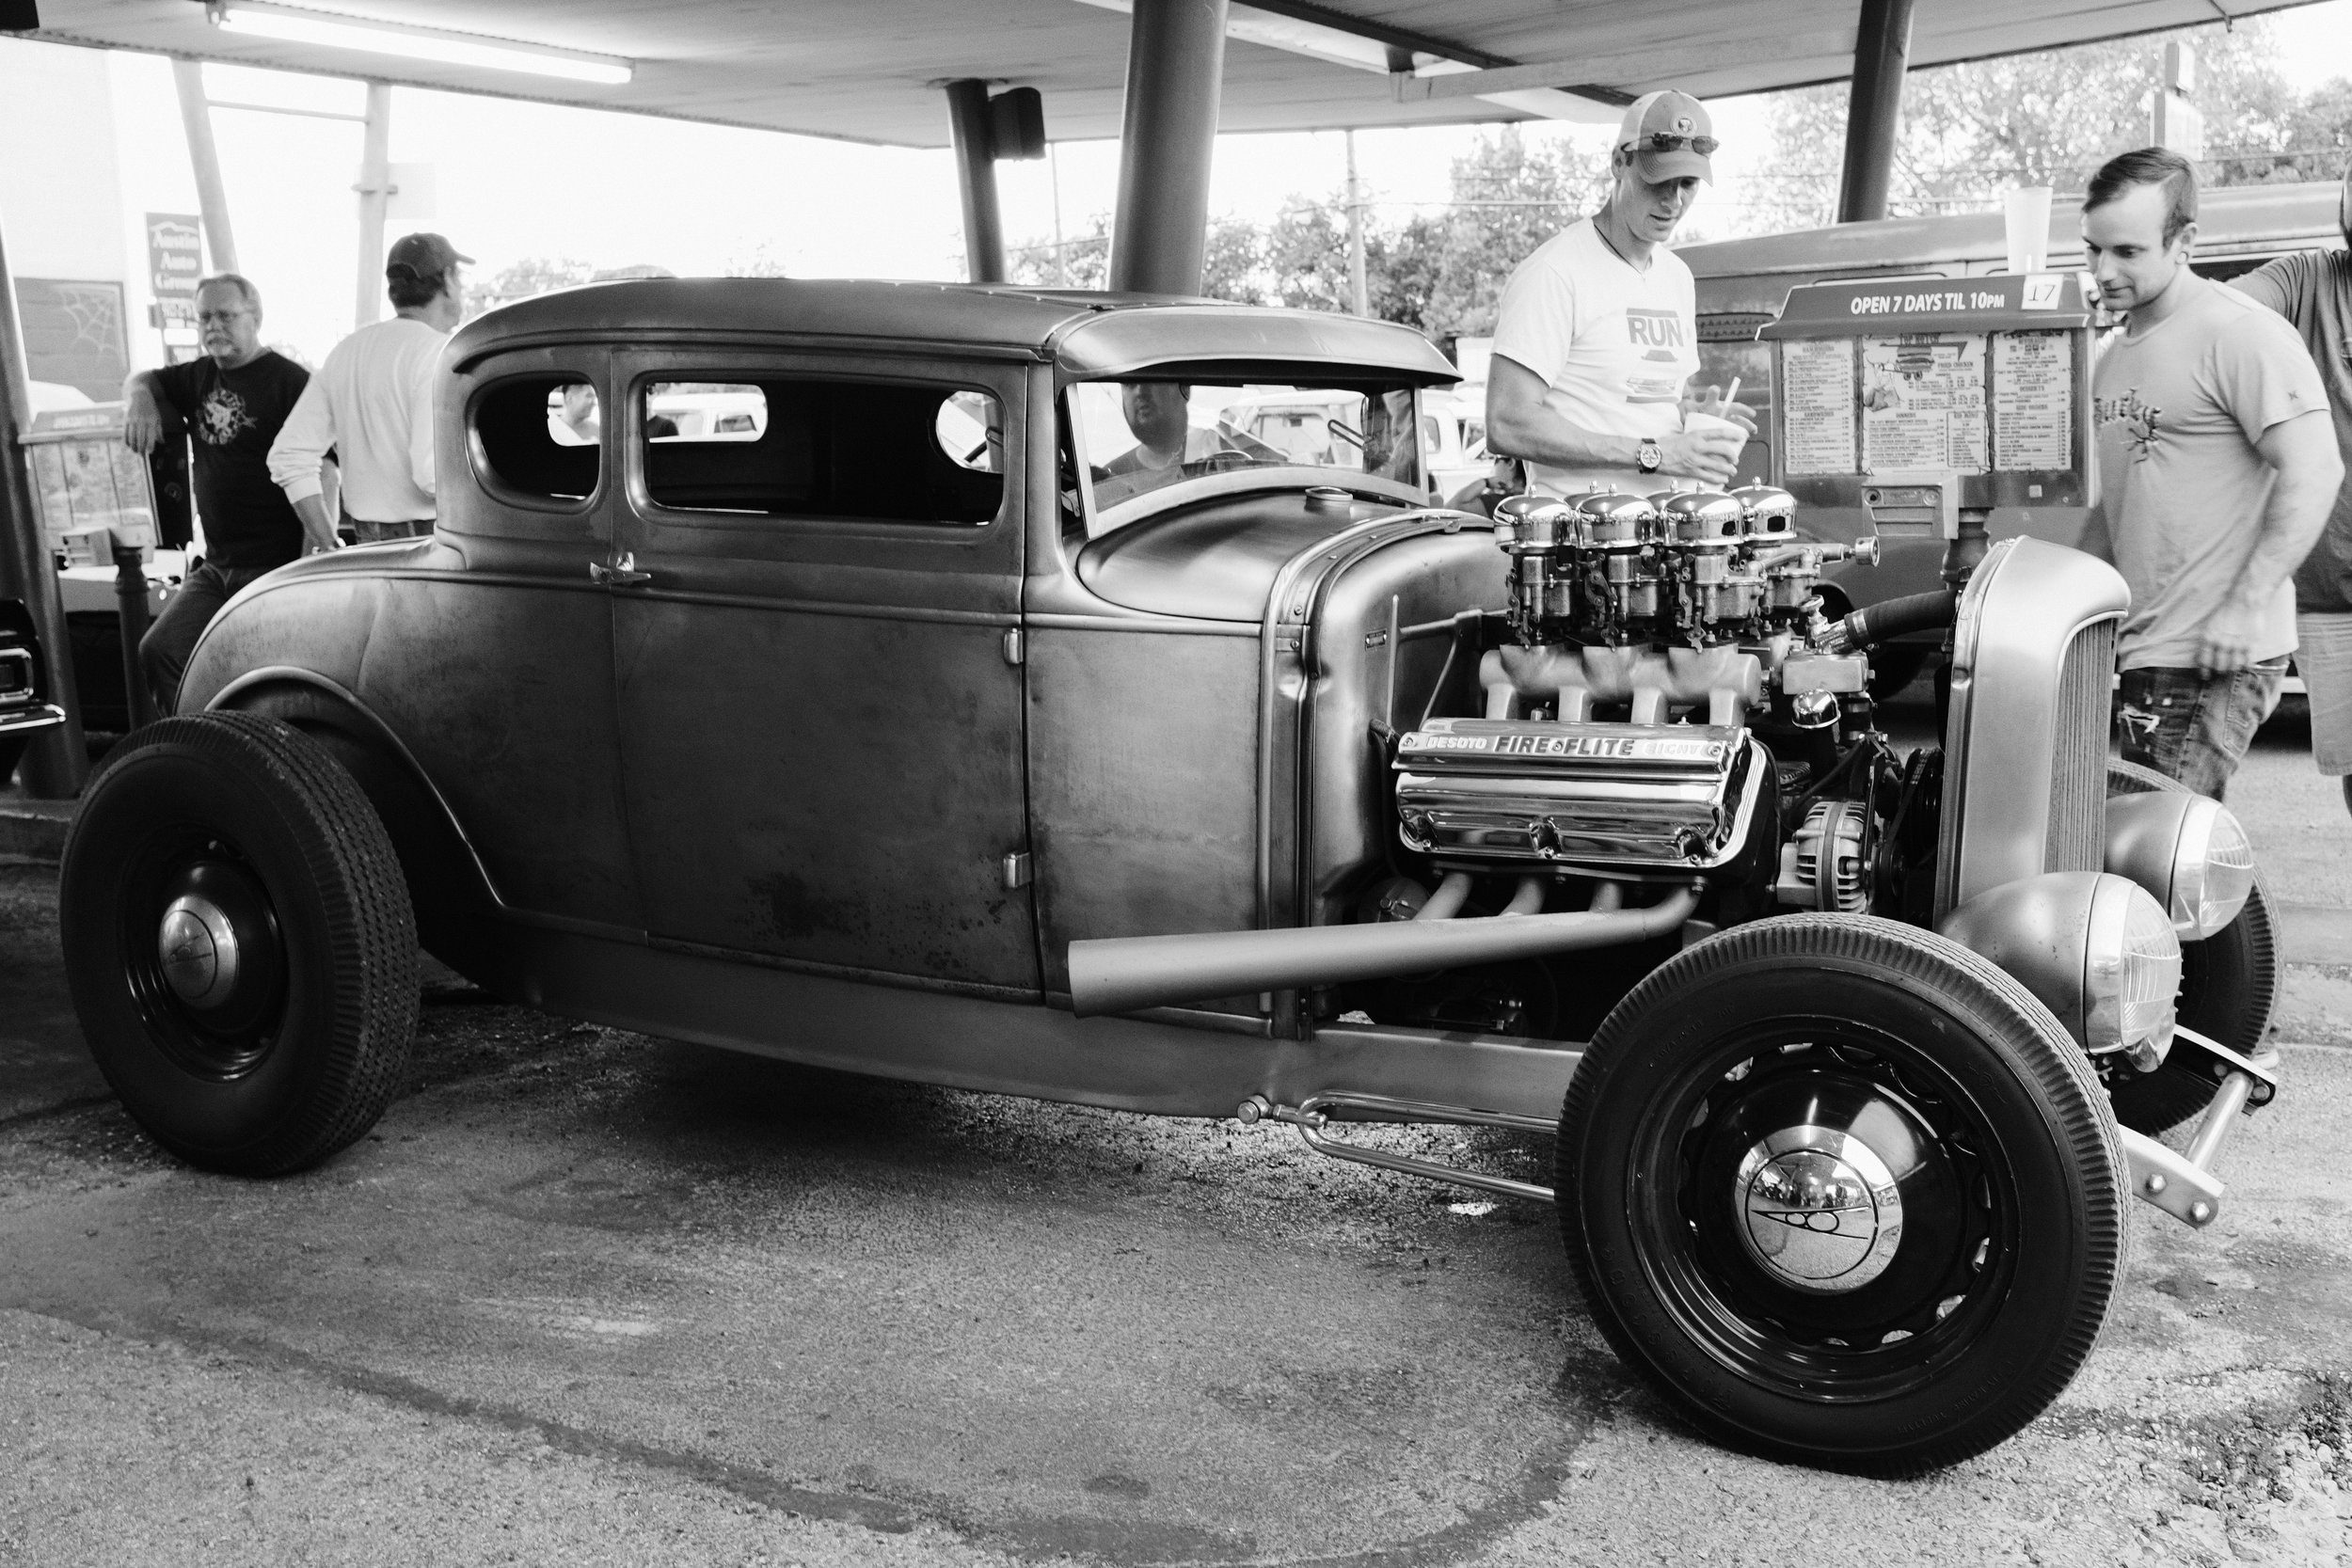 top-notch-hot-rods-08052017-4769.jpg